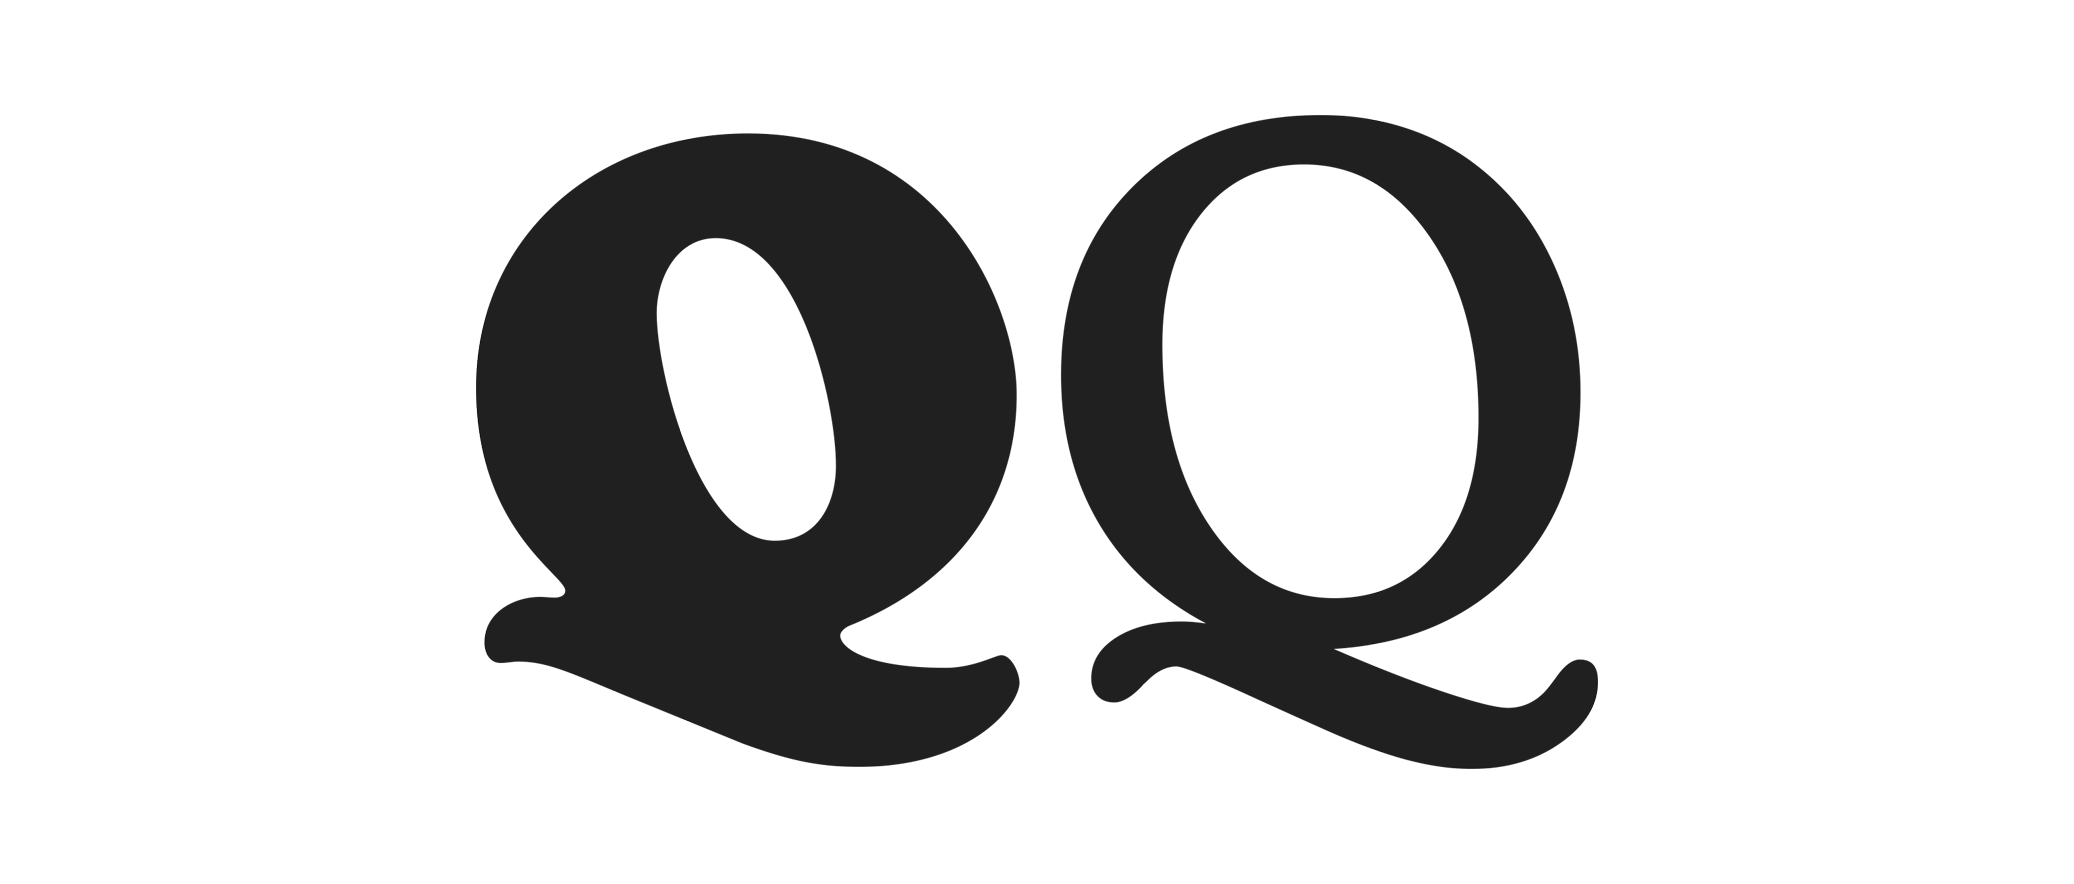 Cooper font review journal the qs in the cooper family share the same curving tail and its interesting to see how it transforms from a delicate appendage into a sled jutting out biocorpaavc